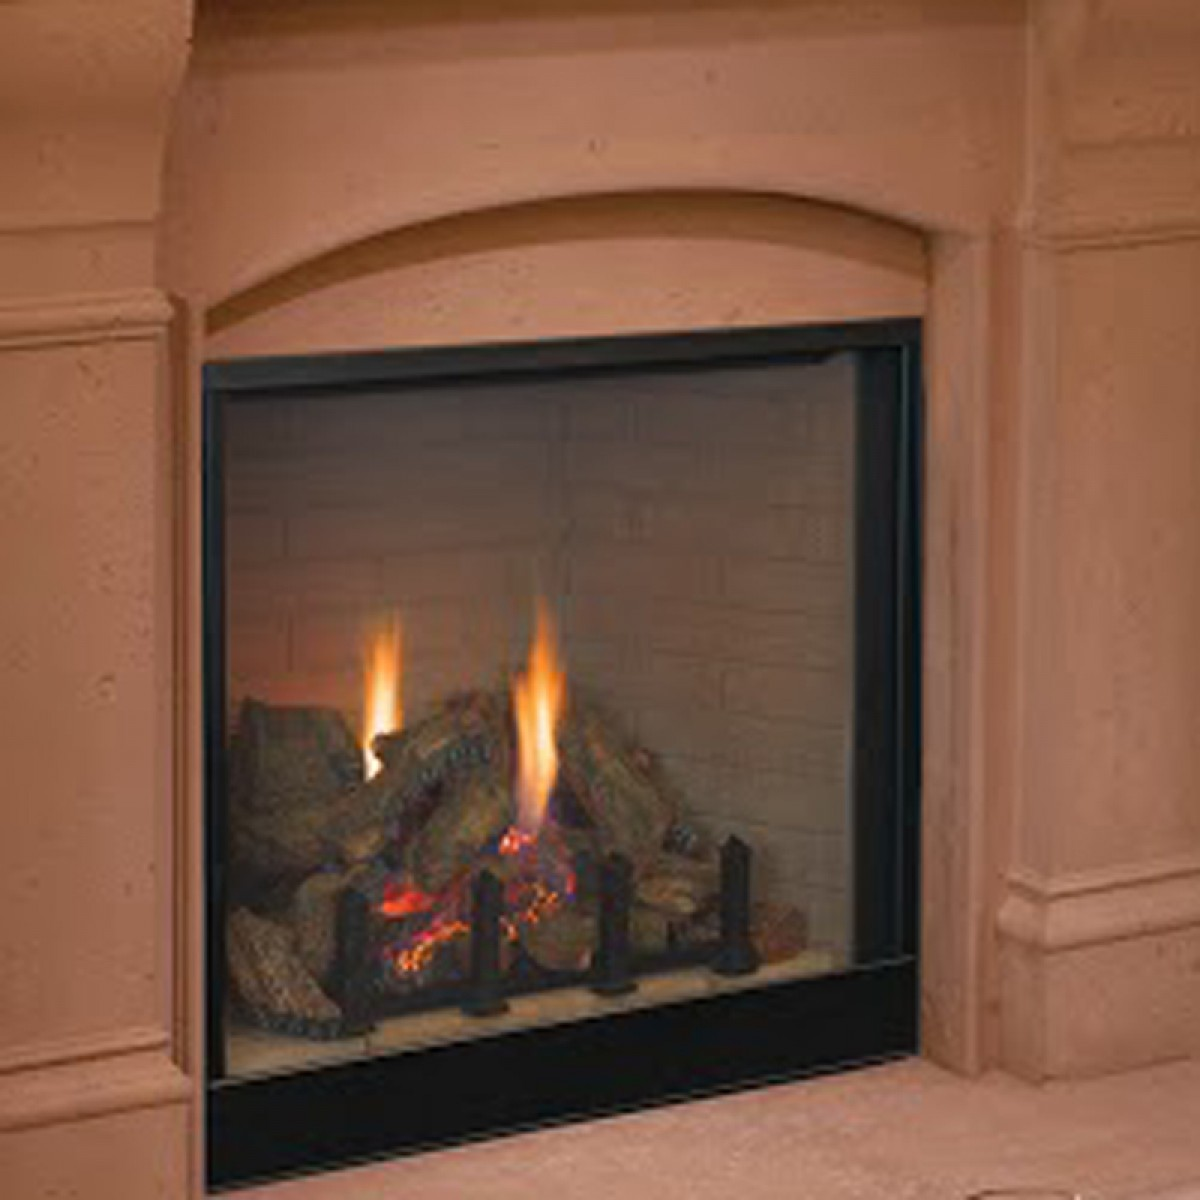 Ihp Superior Drt4036 42 Direct Vent Gas Fireplace